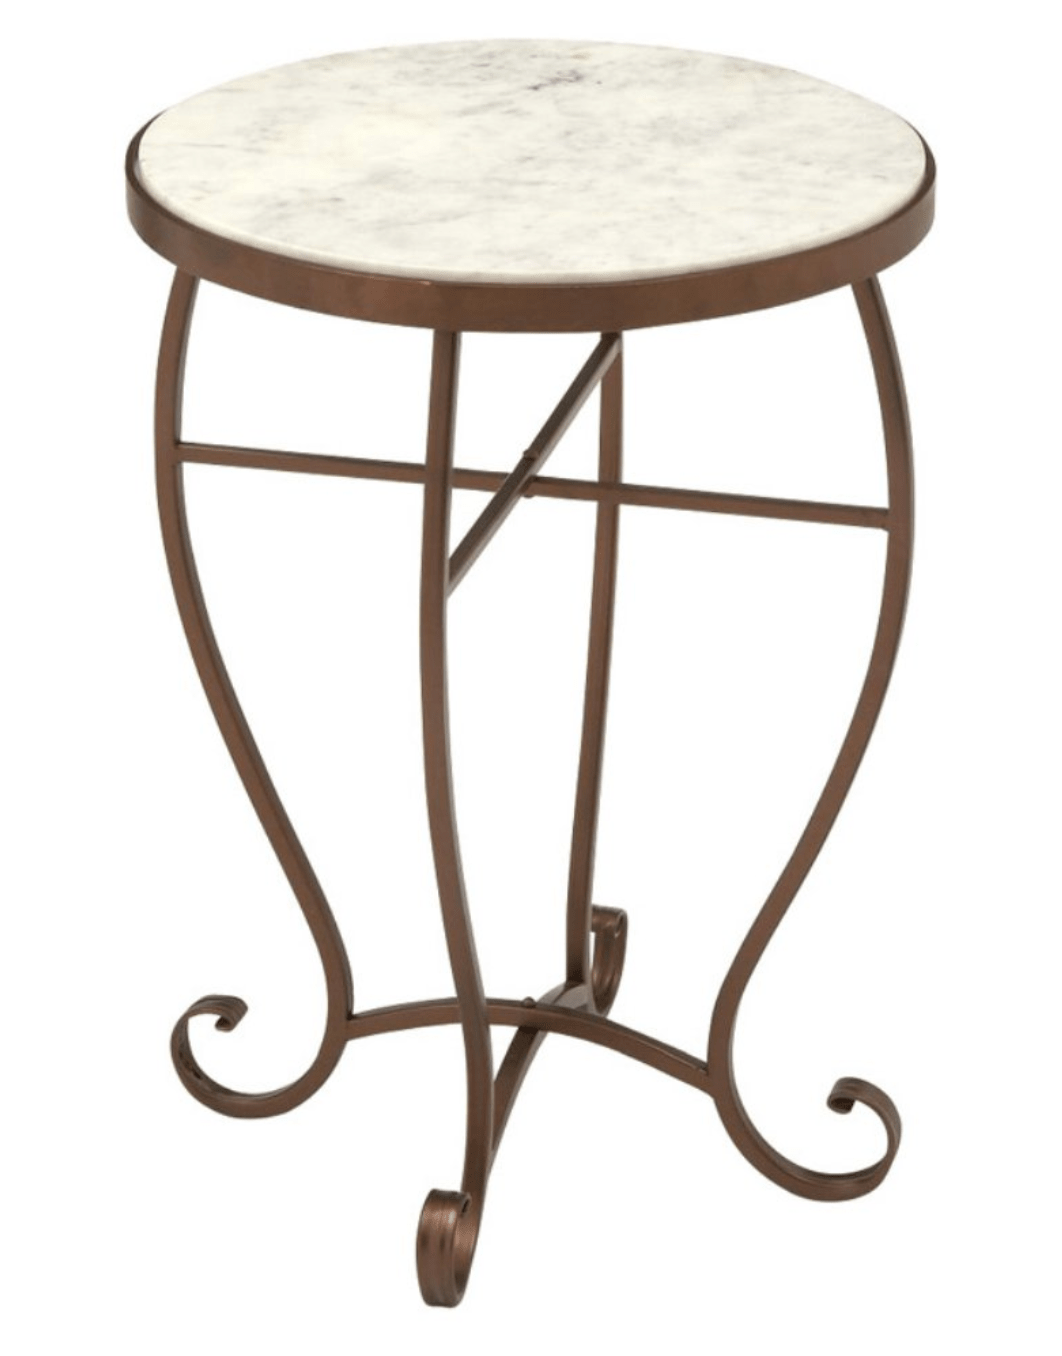 lovely small accent table for compact marble round min sasha top walnut dining high pub concrete look outdoor furniture ikea wall storage bins home accents free end tables side